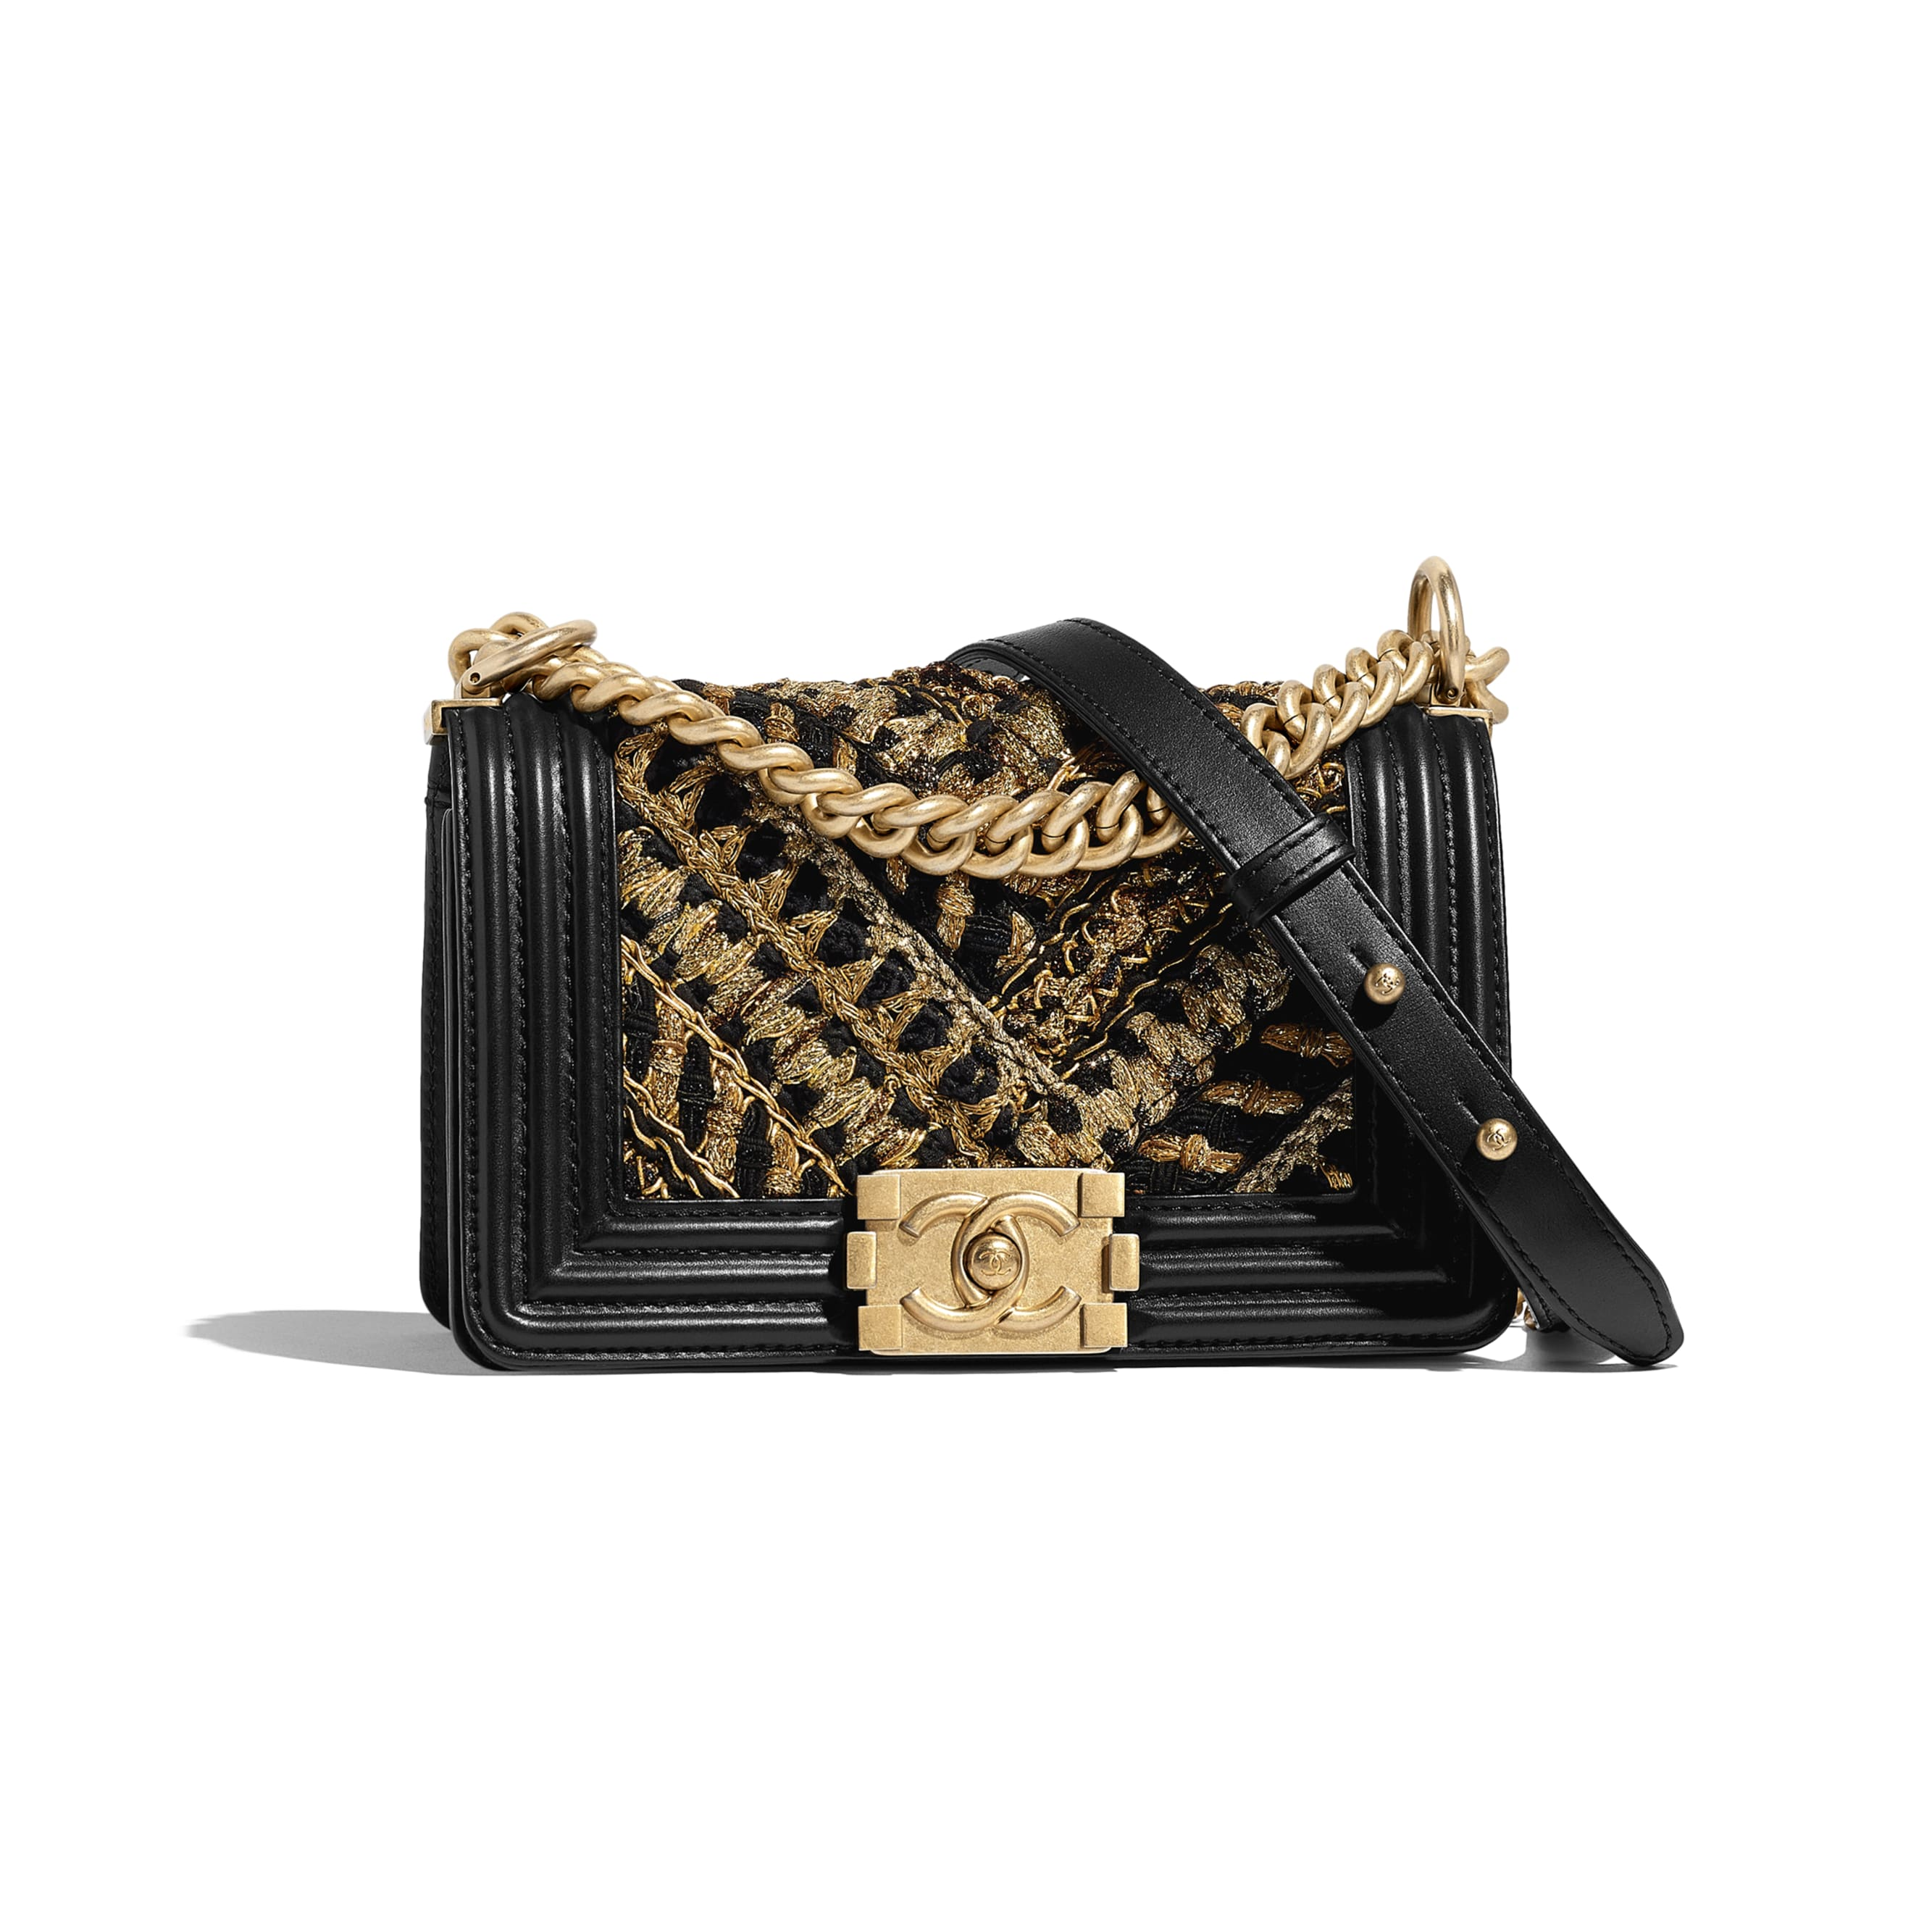 Small BOY CHANEL Handbag - Black & Gold - Calfskin, Cotton & Gold-Tone Metal - CHANEL - Default view - see standard sized version